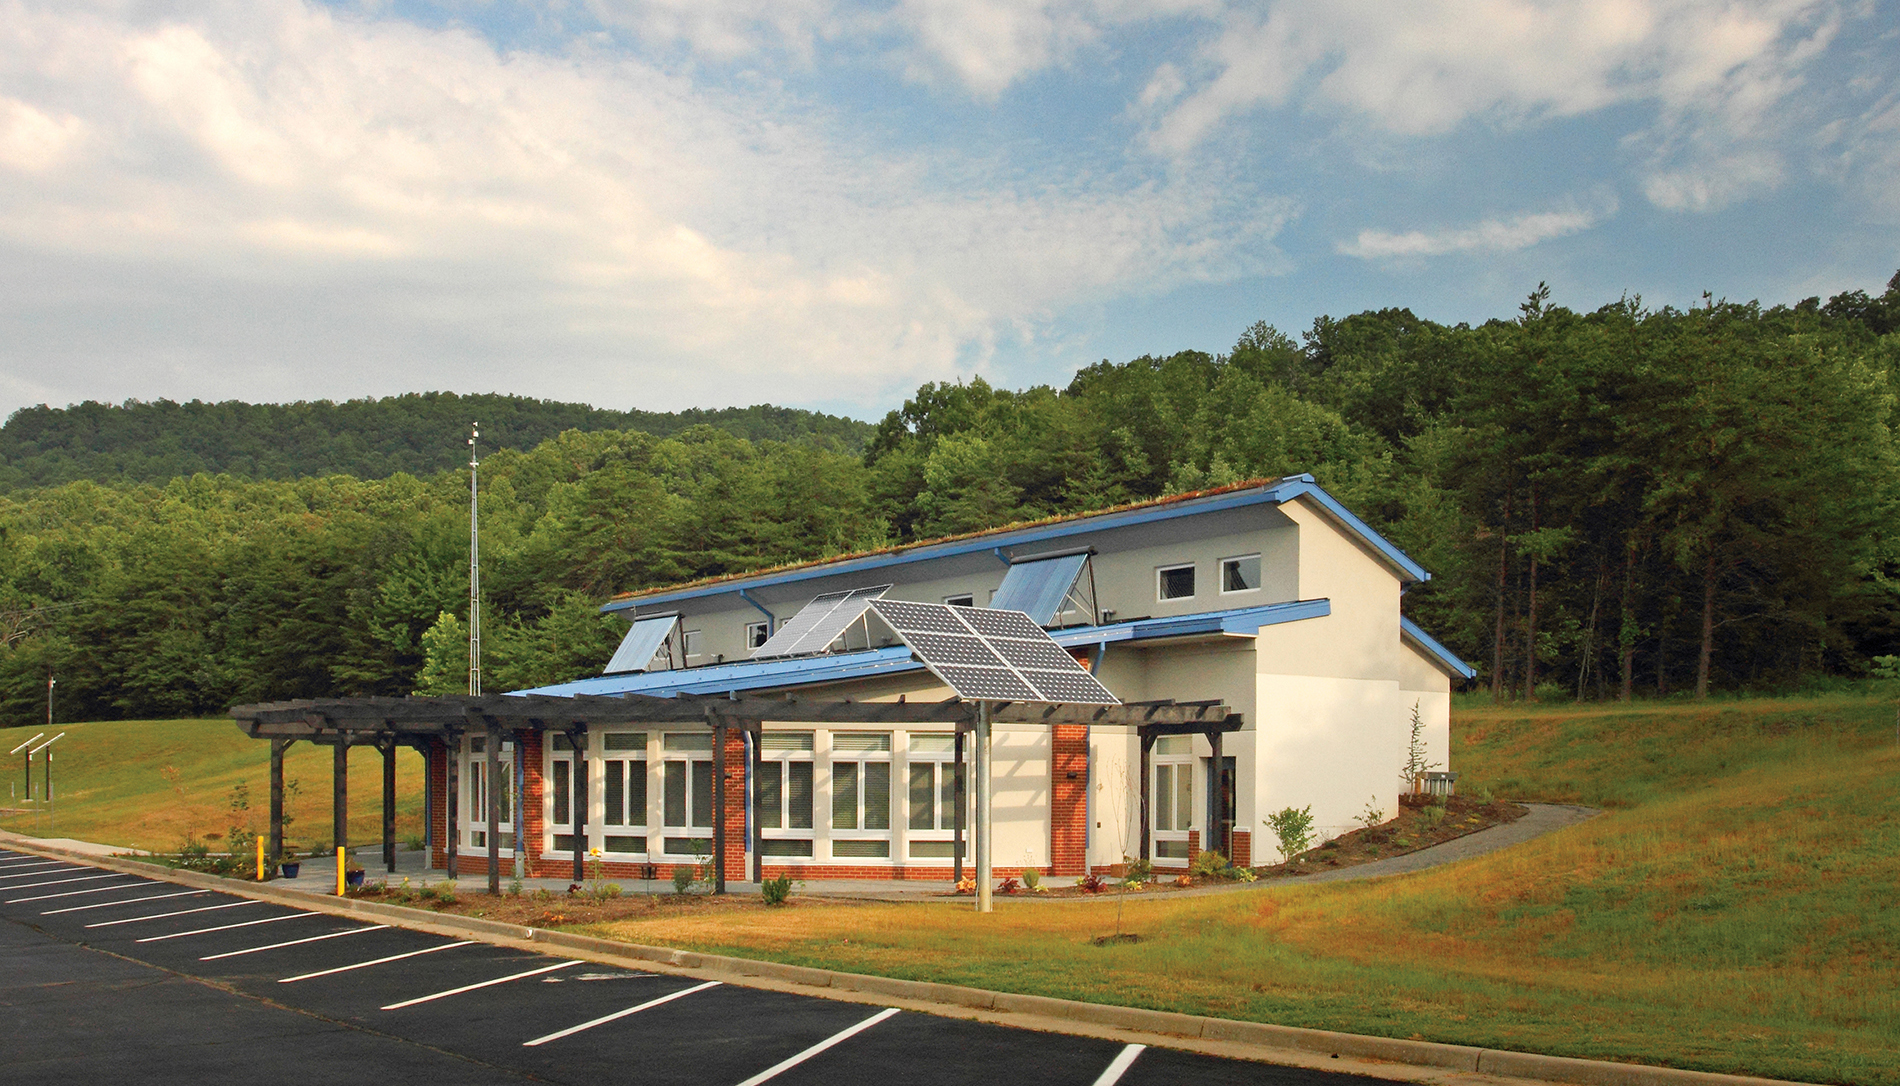 Passive House design has expanded to commercial and institutional buildings. The Center for Energy Efficient Design in Franklin County, Va., is the first Passive House public school (K–12) in the United States. IMAGE courtesy of PHIUS